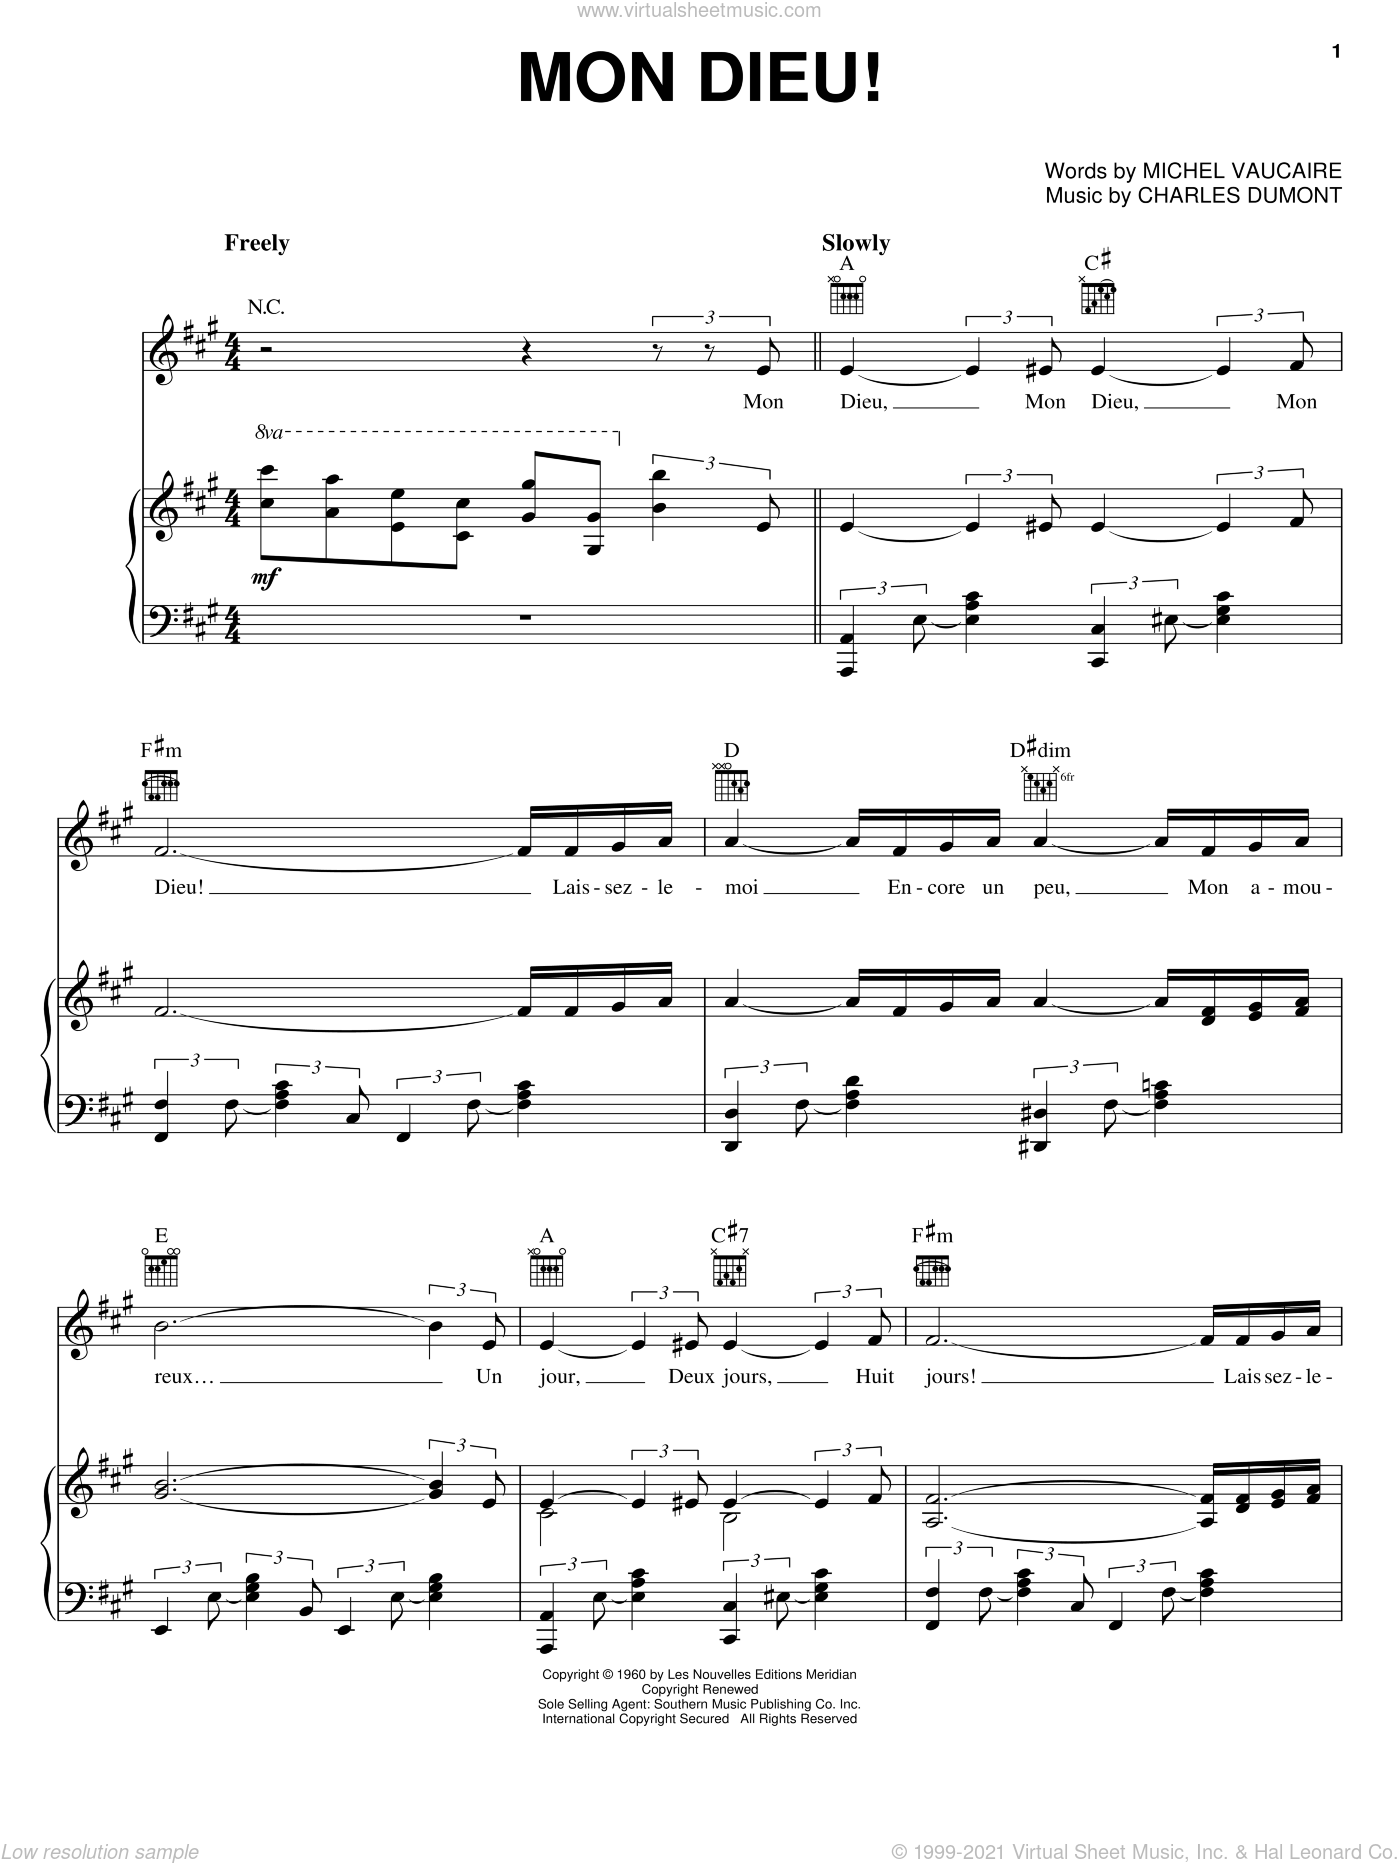 Mon Dieu! sheet music for voice, piano or guitar by Edith Piaf, Charles Dumont and Michel Vaucaire, intermediate skill level